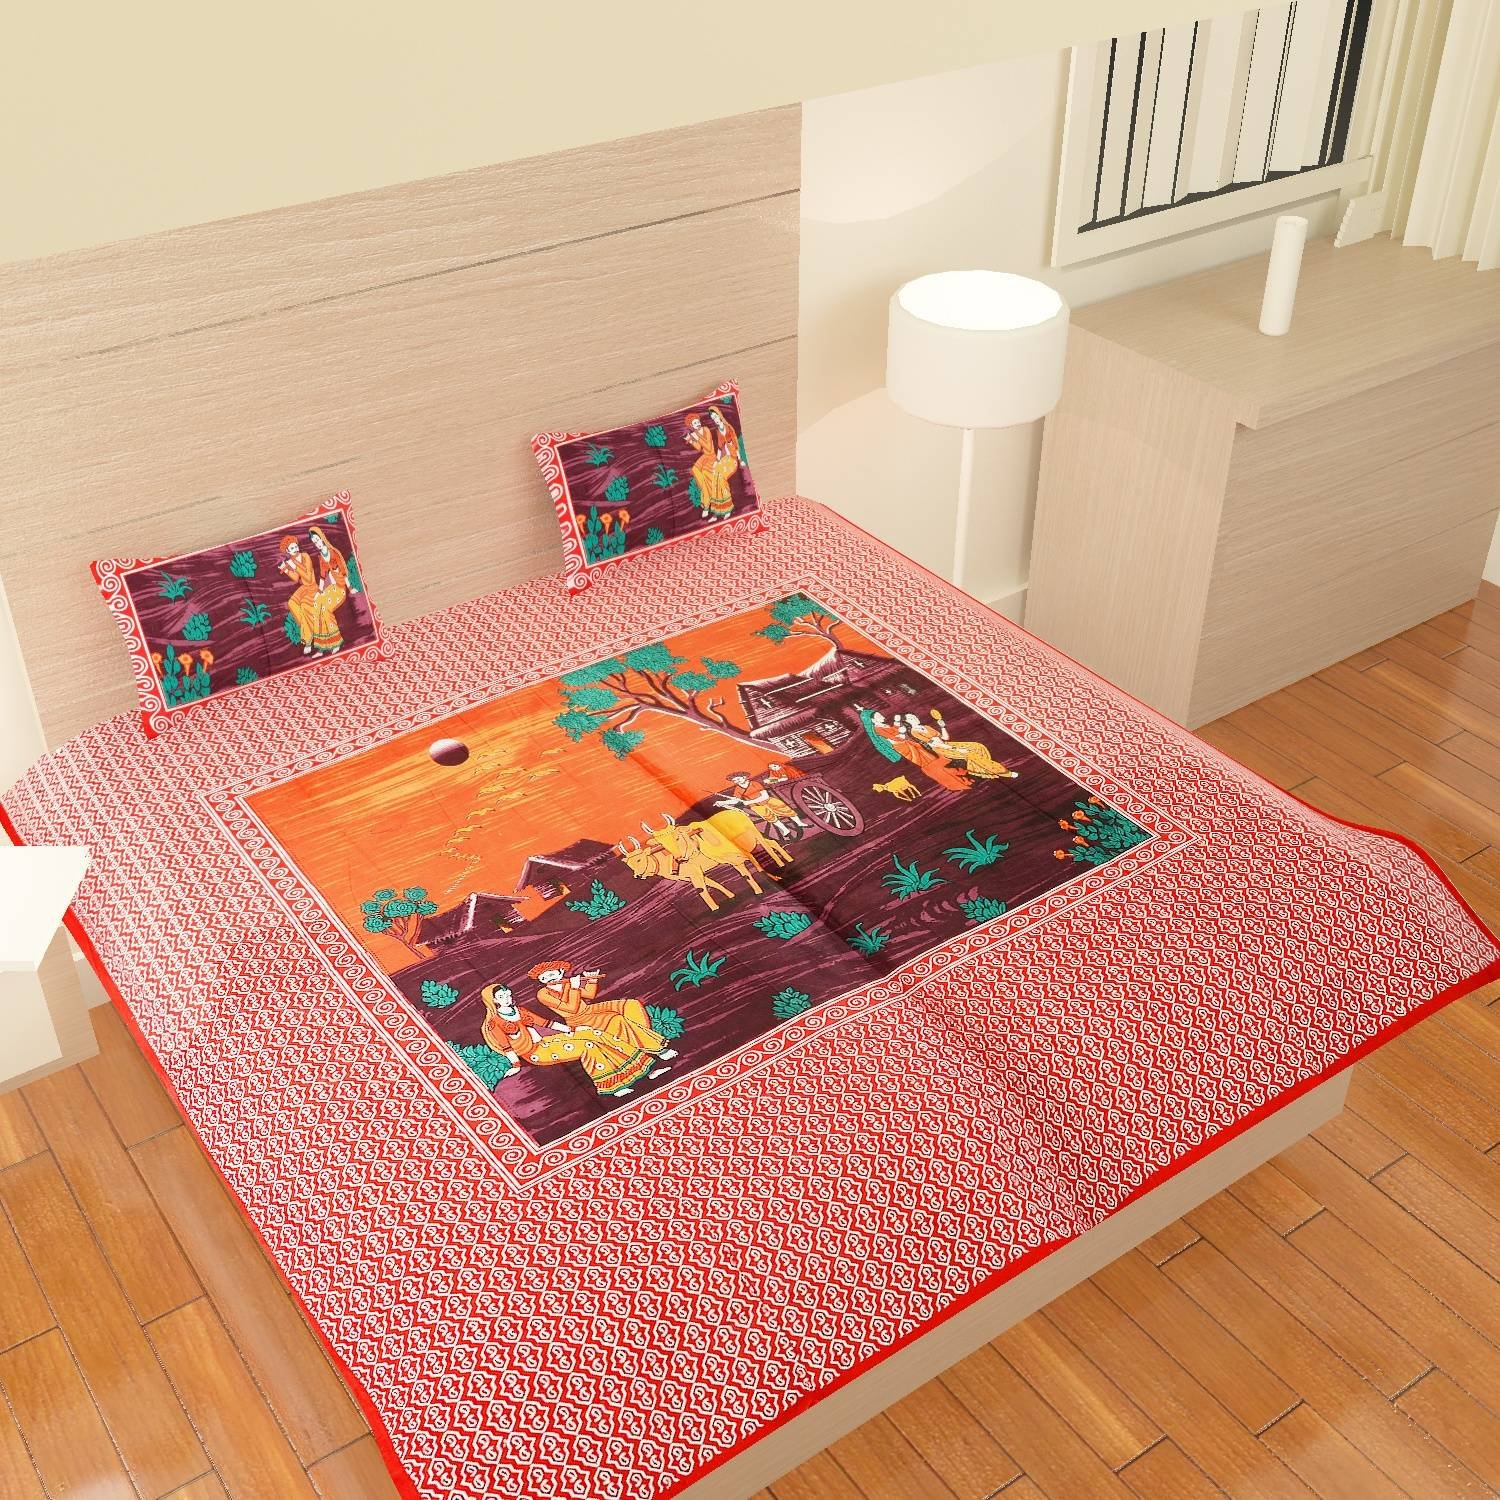 traditional mafia rses777795 Collection Printed Double Bed Sheet Set with 2 Pillow Covers, King, Red